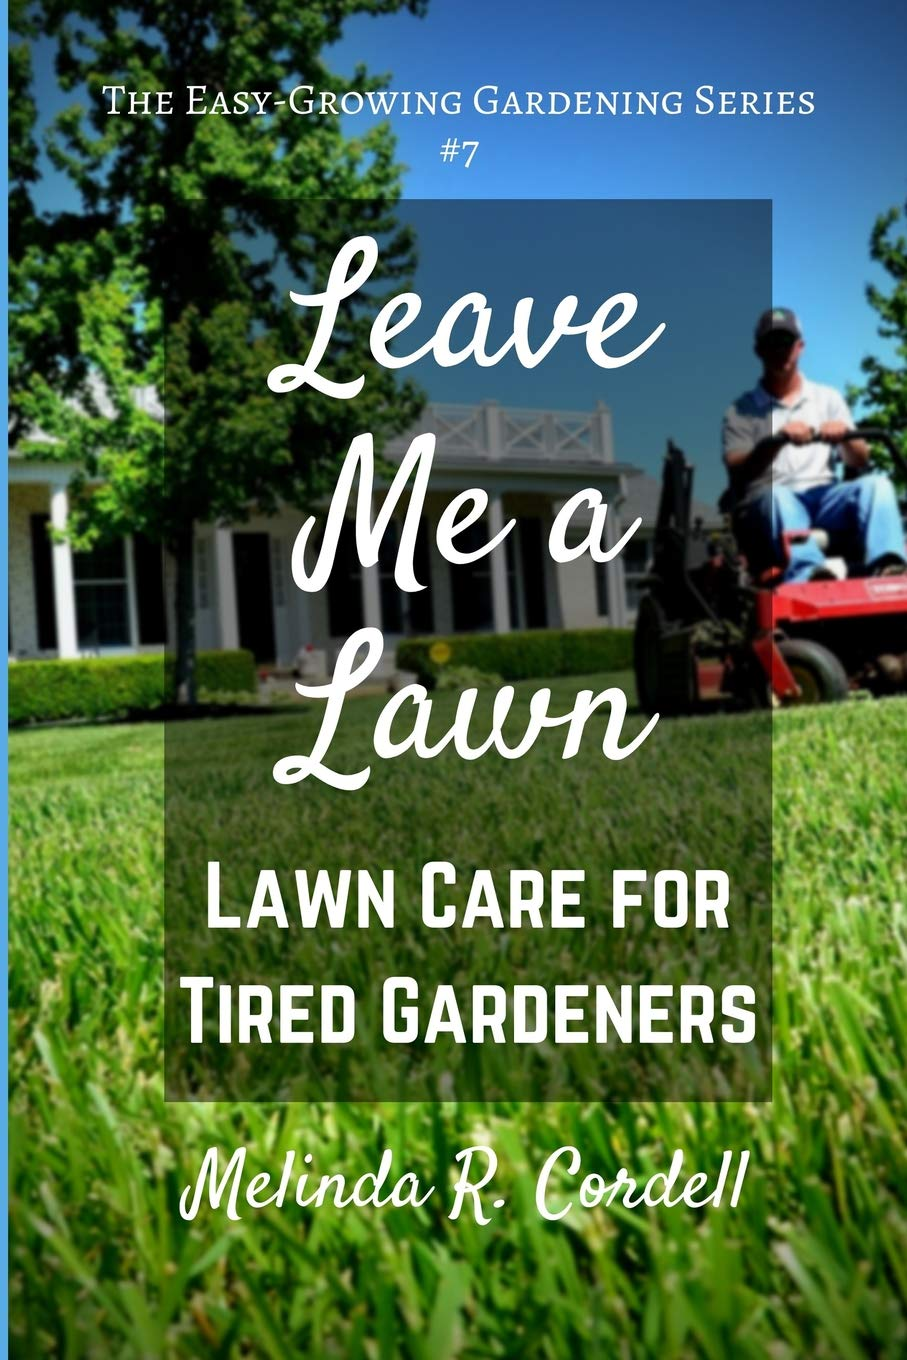 Leave Me a Lawn: Lawn Care for Tired Gardeners (Easy-Growing Gardening Series Band 7)